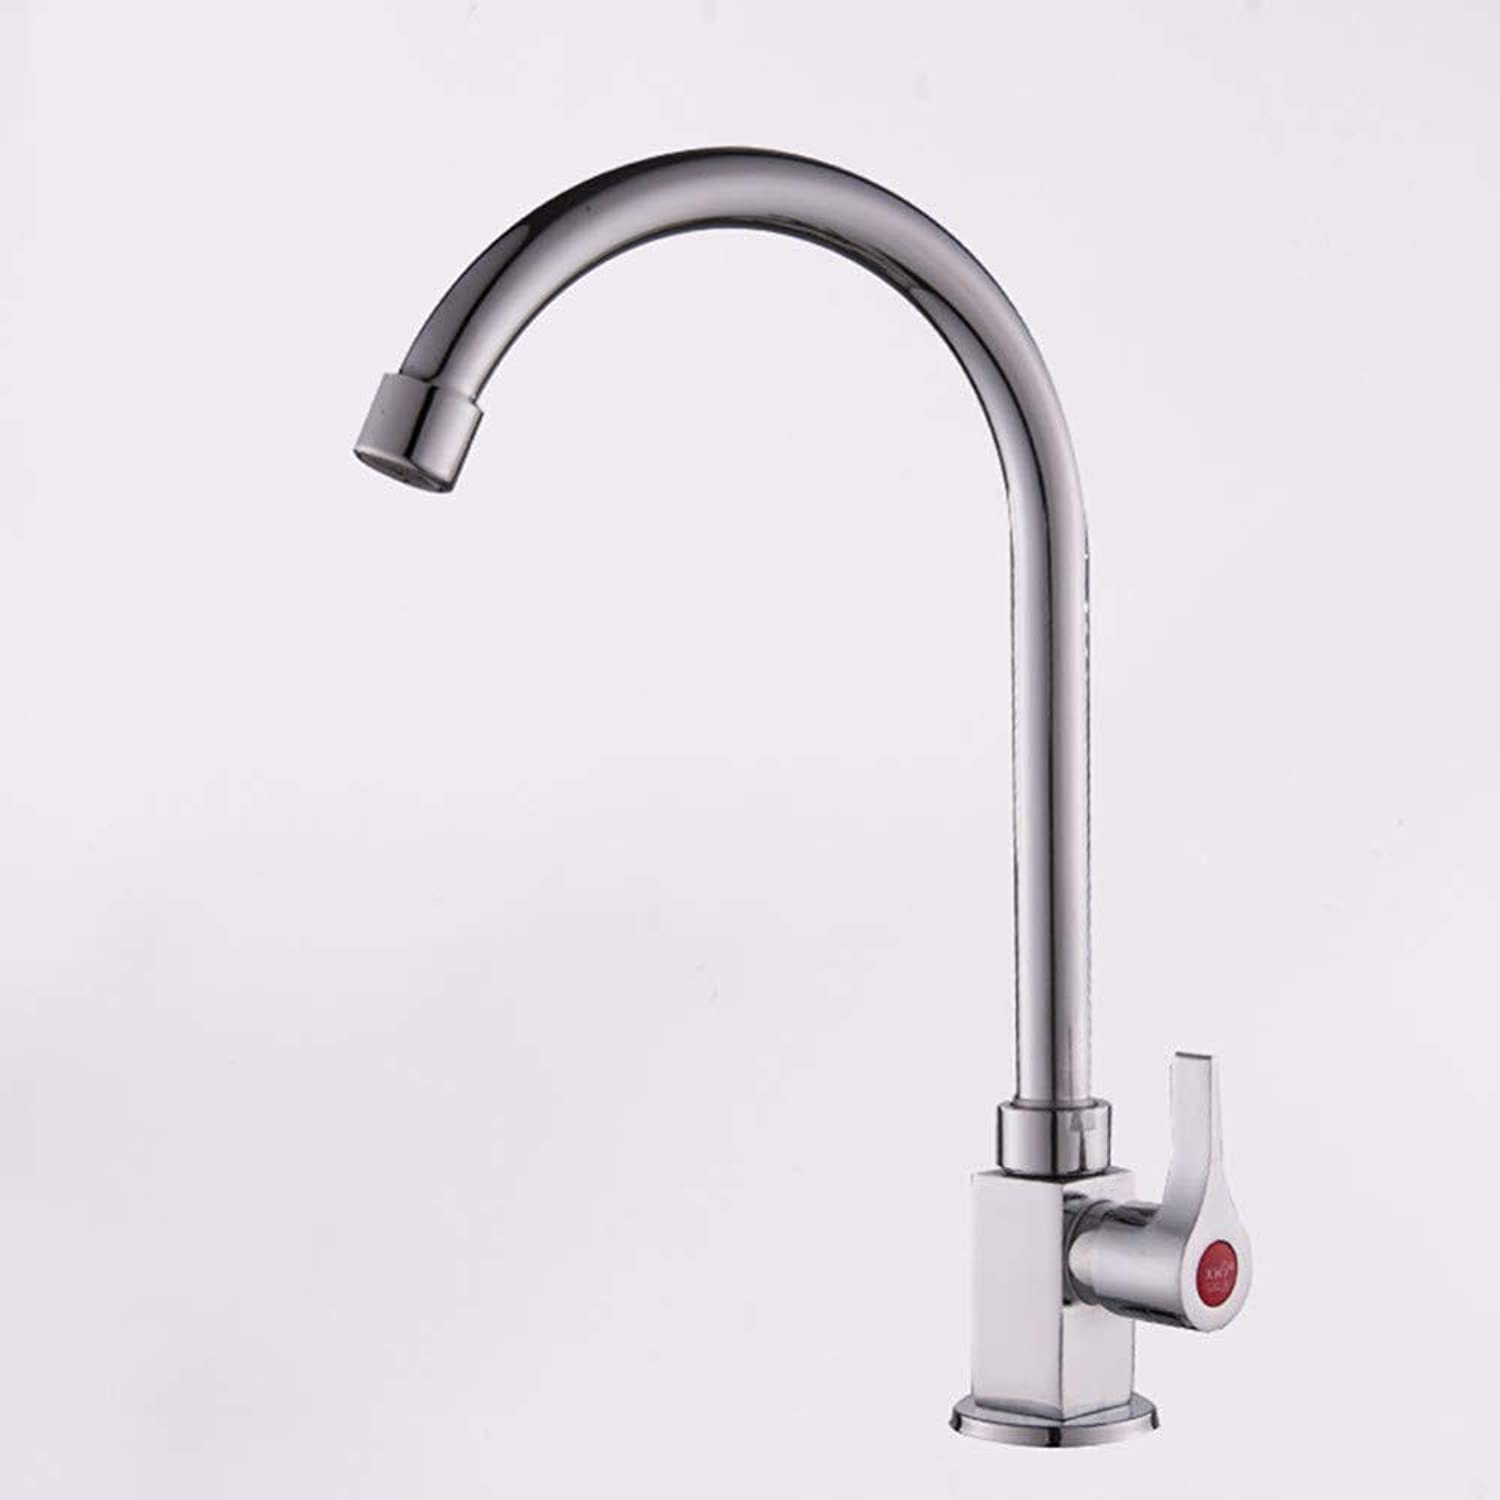 360° redating Faucet Retro Faucet Special Kitchen Faucet Hot and Cold Water Tank Can redate Environmental Predection Faucet